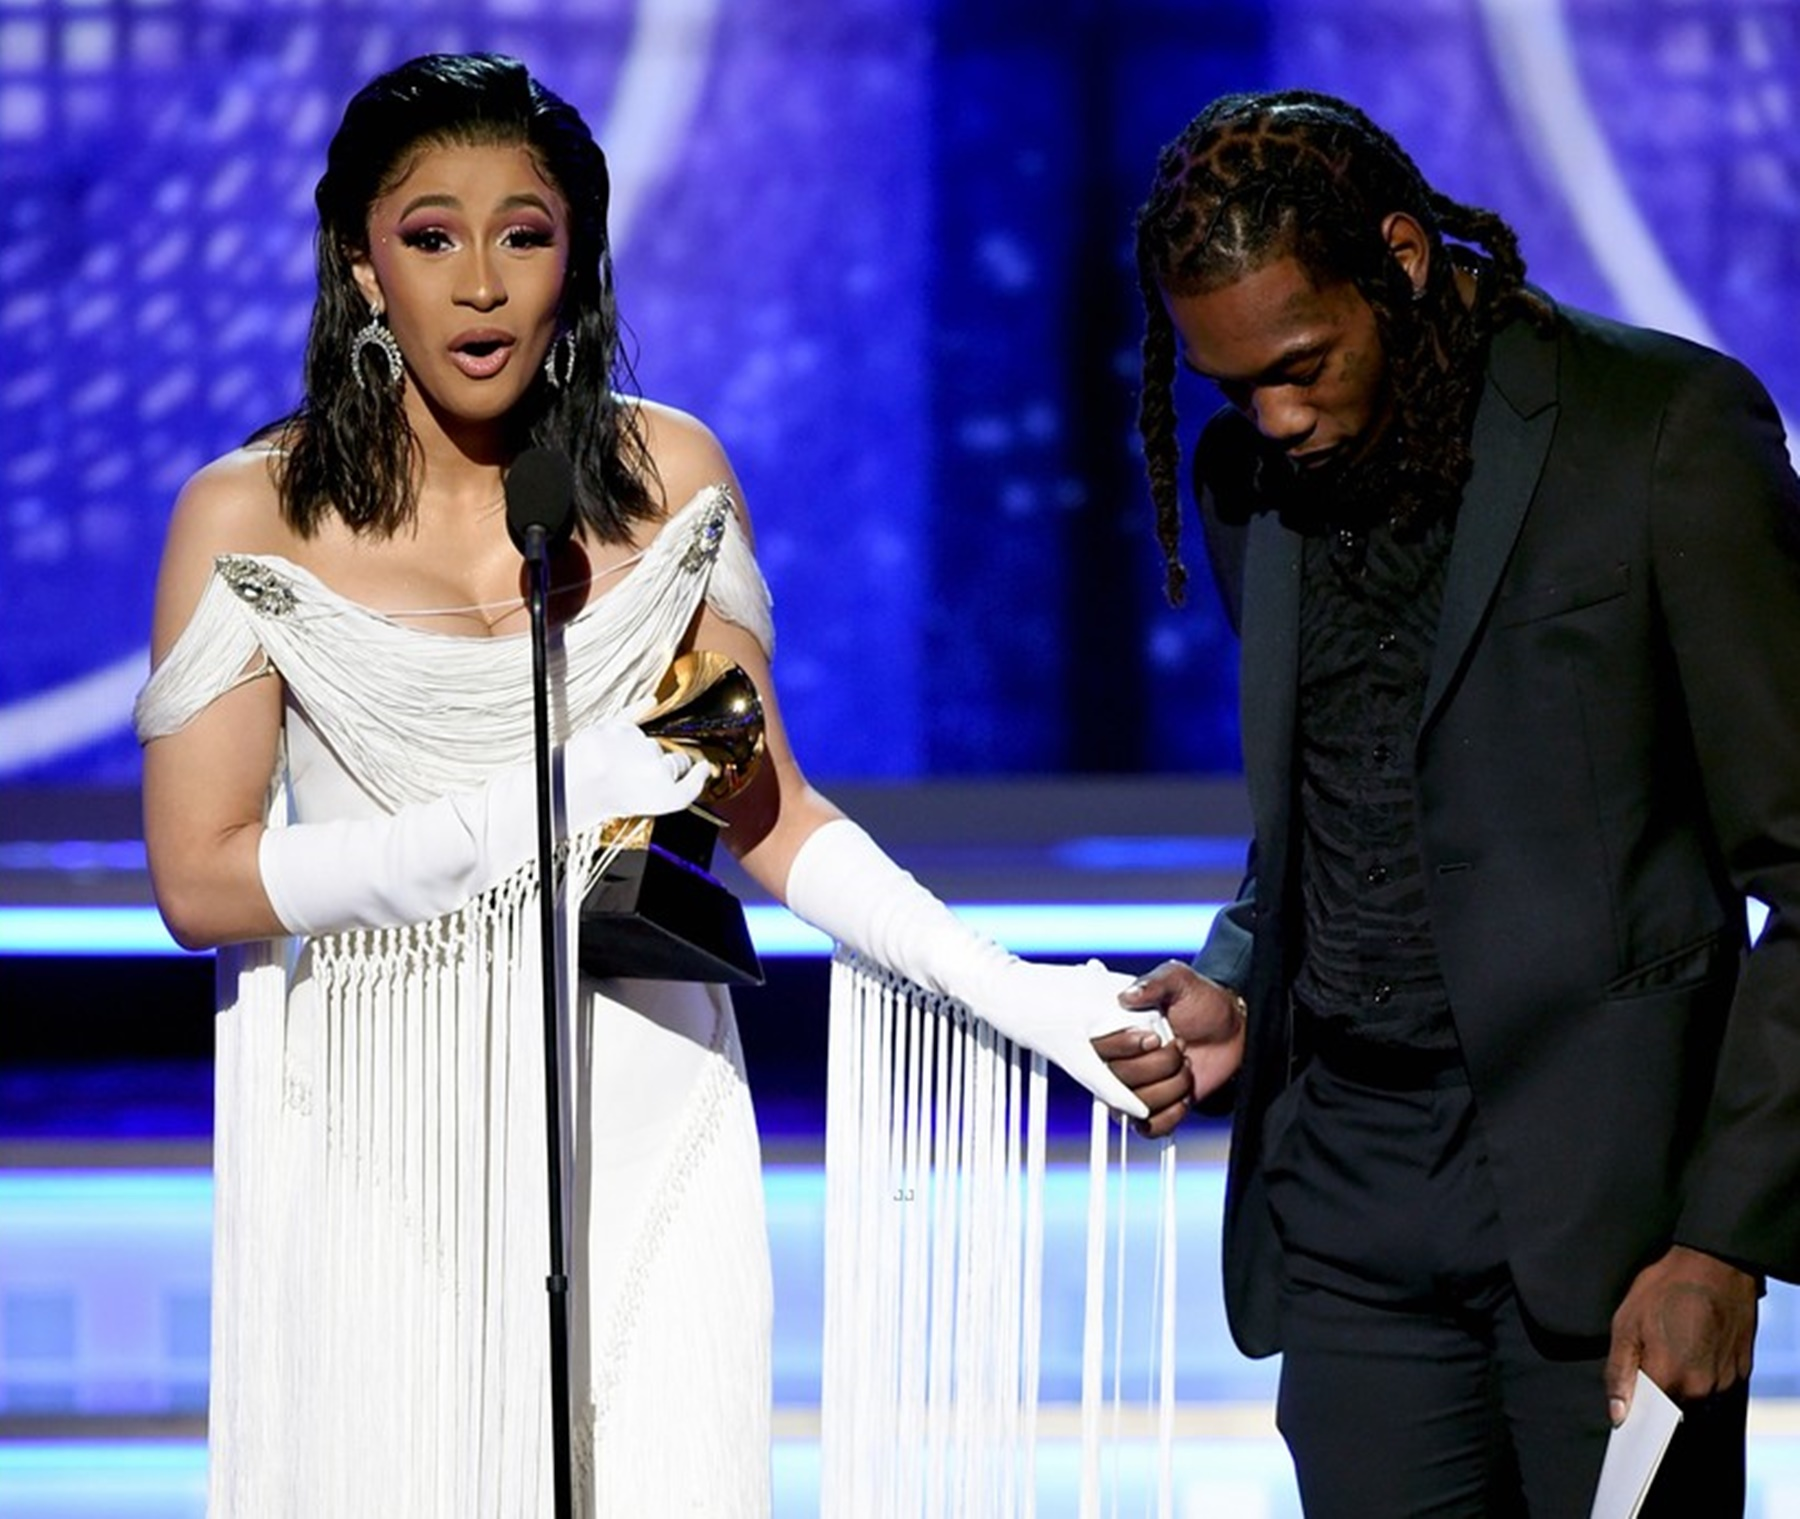 Cardi B Disables Her Instagram After Winning Best Rap Album At Grammys